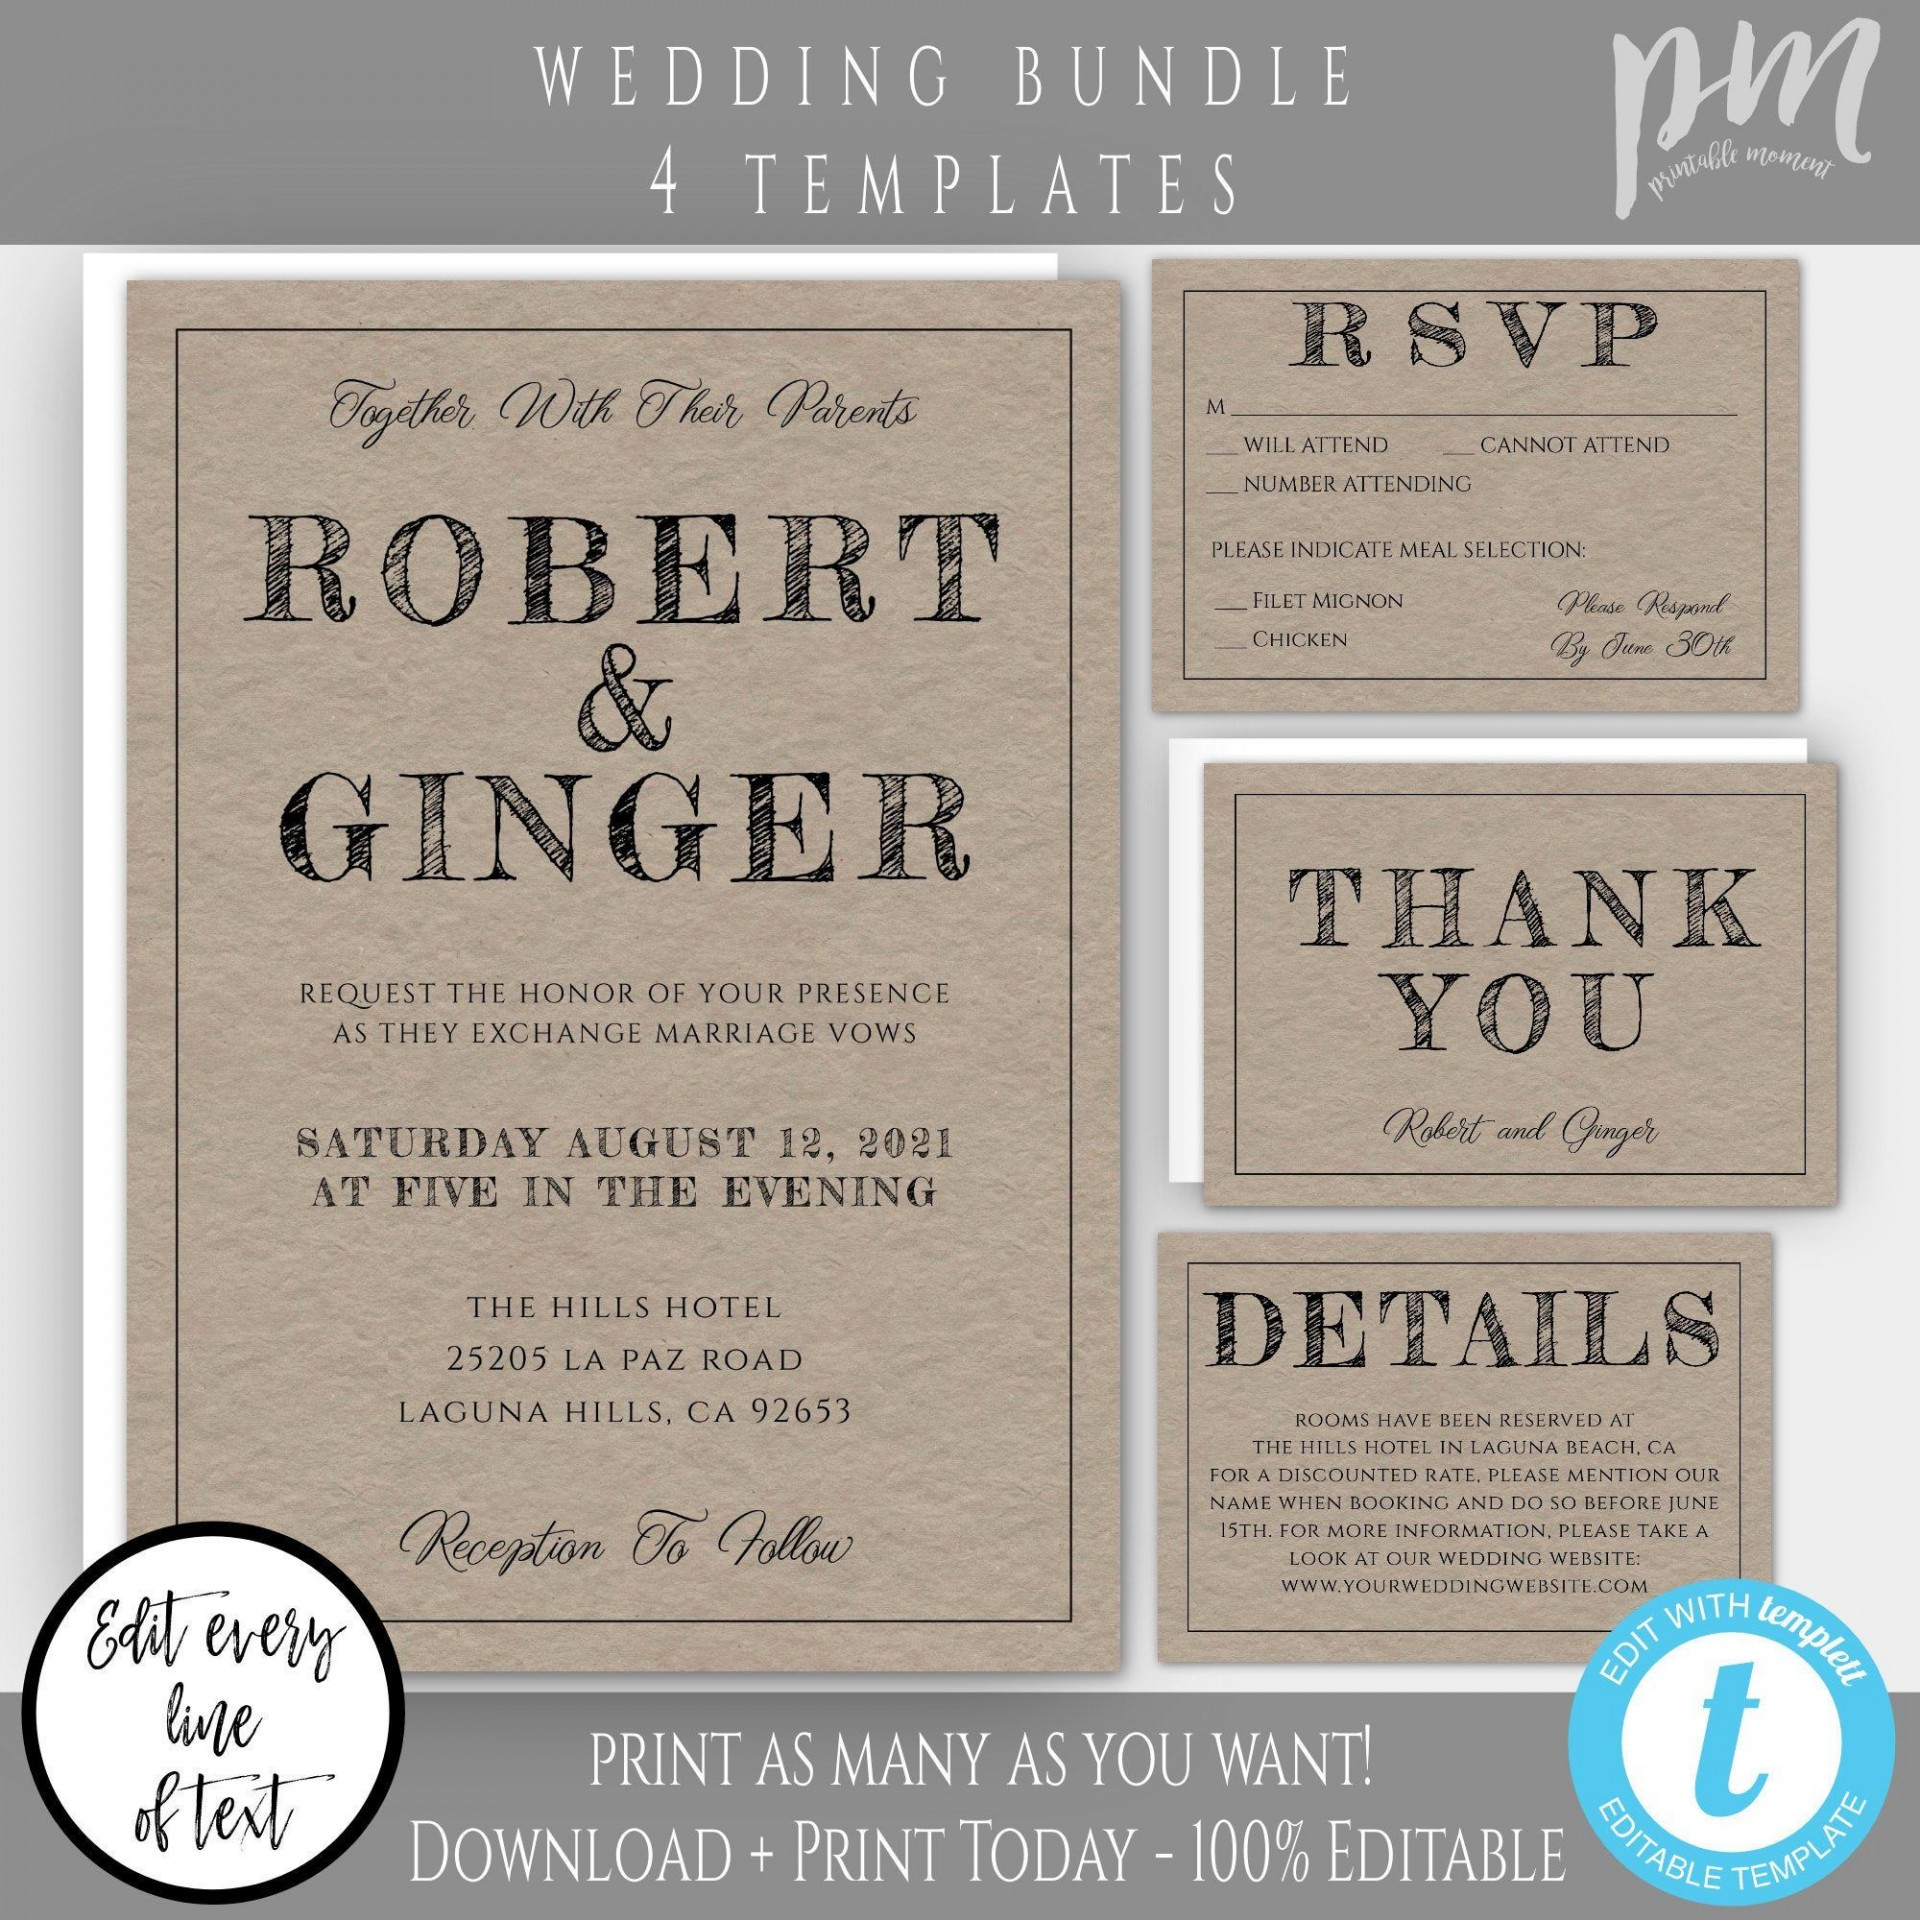 008 Magnificent Rustic Wedding Invitation Template Example  Templates Free For Word Maker Photoshop1920